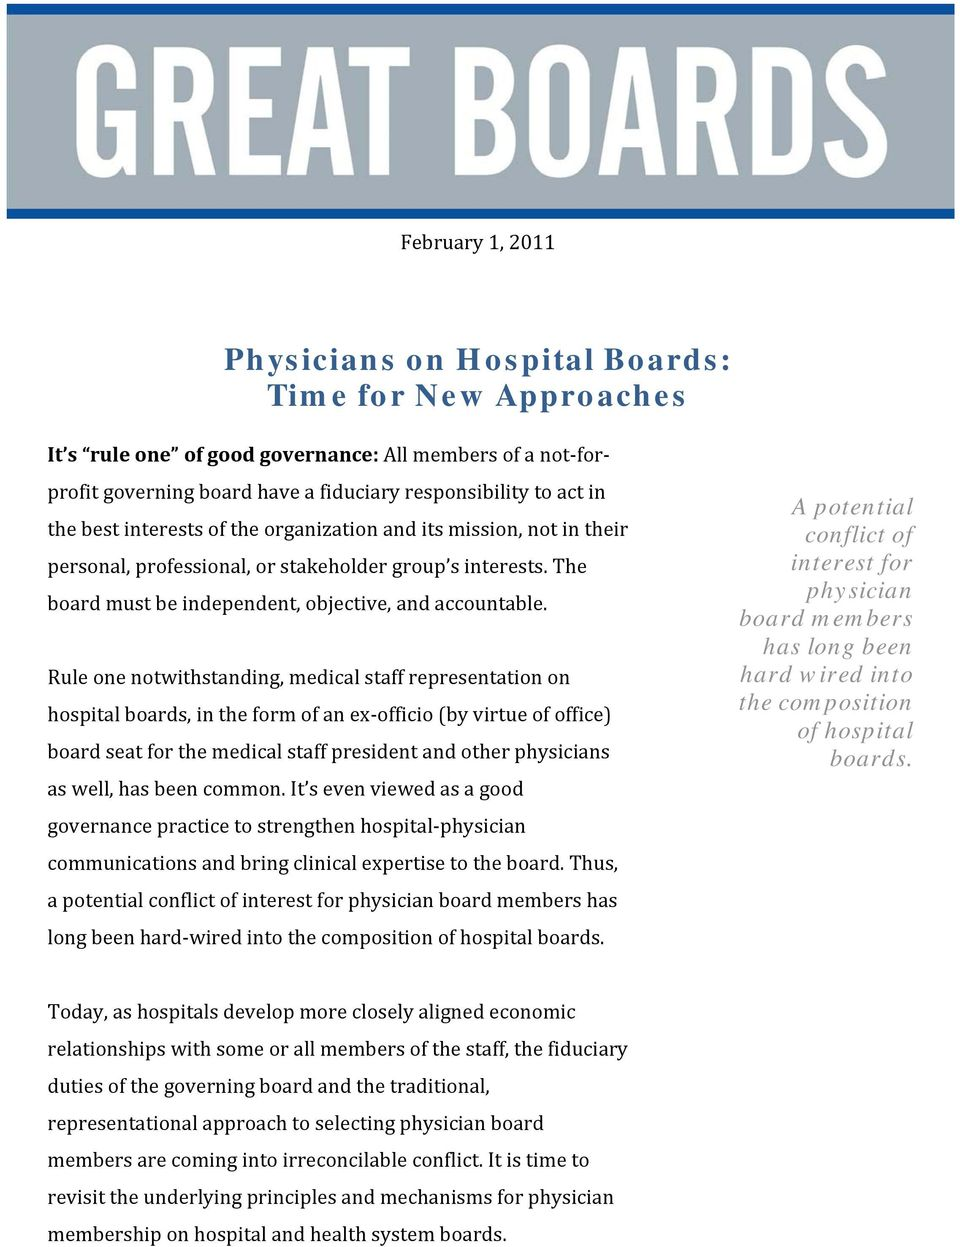 Rule one notwithstanding, medical staff representation on hospital boards, in the form of an ex officio (by virtue of office) board seat for the medical staff president and other physicians as well,